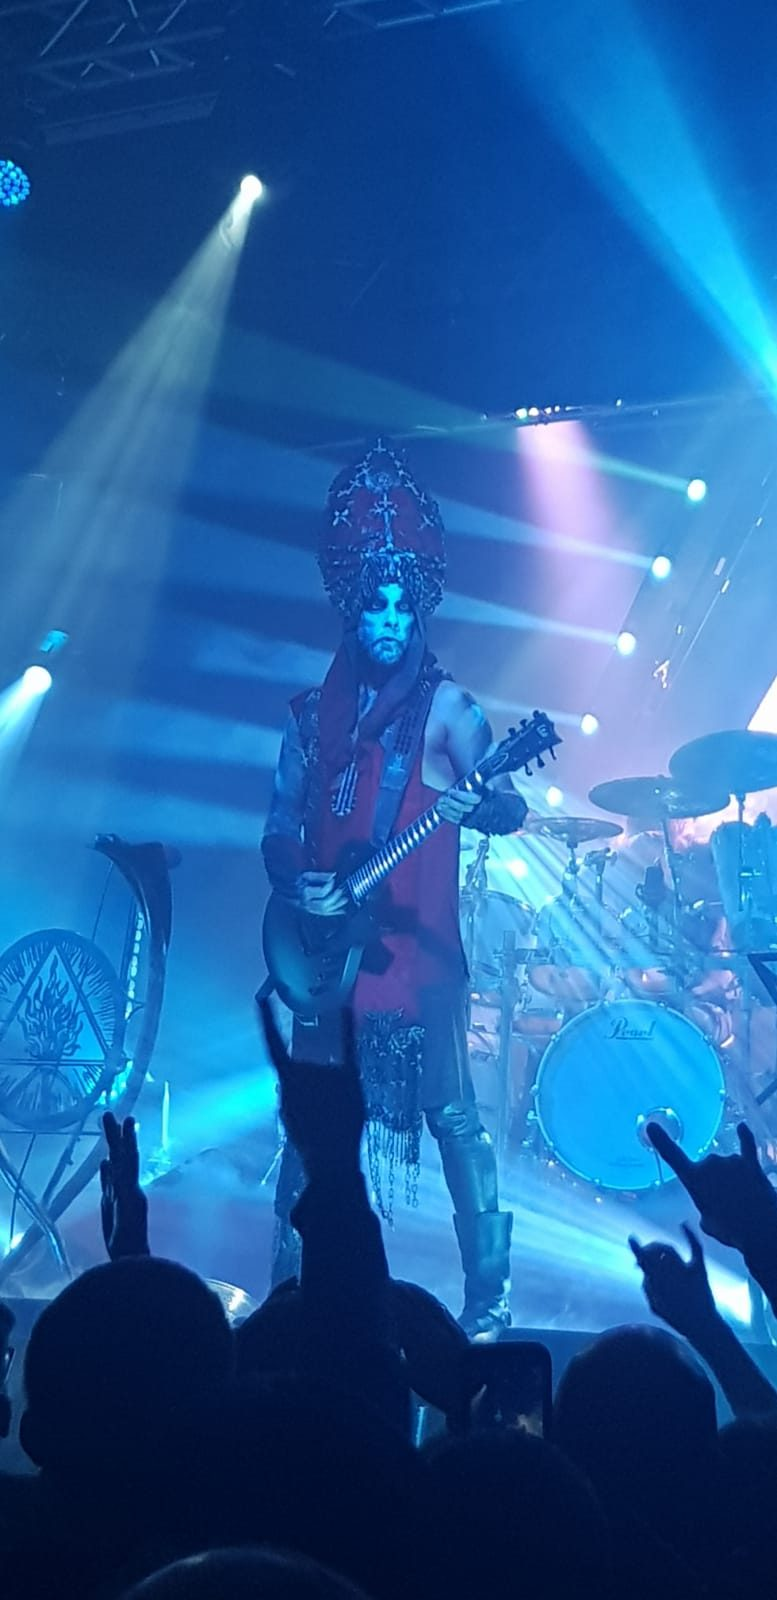 live-review-ecclesia-diabolica-evropa-2019-behemoth-at-the-gates-und-wolves-in-the-throne-room-13-01-2019-arena-wien